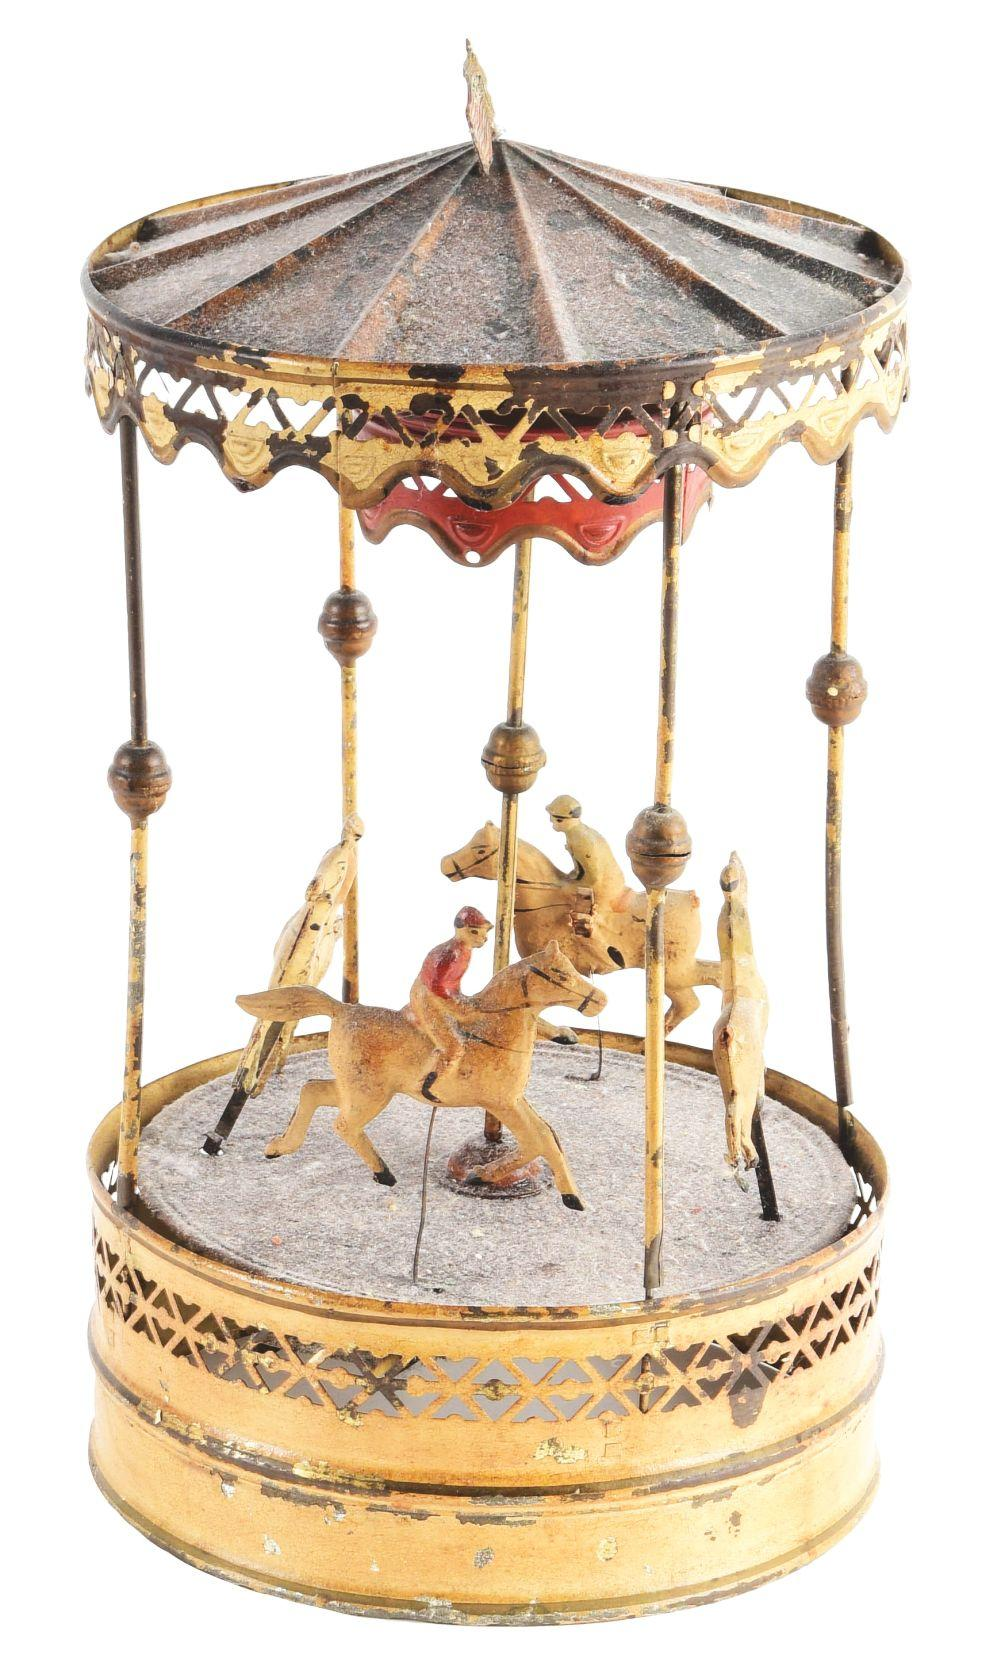 German Tin Hand-Painted Carousel Toy.